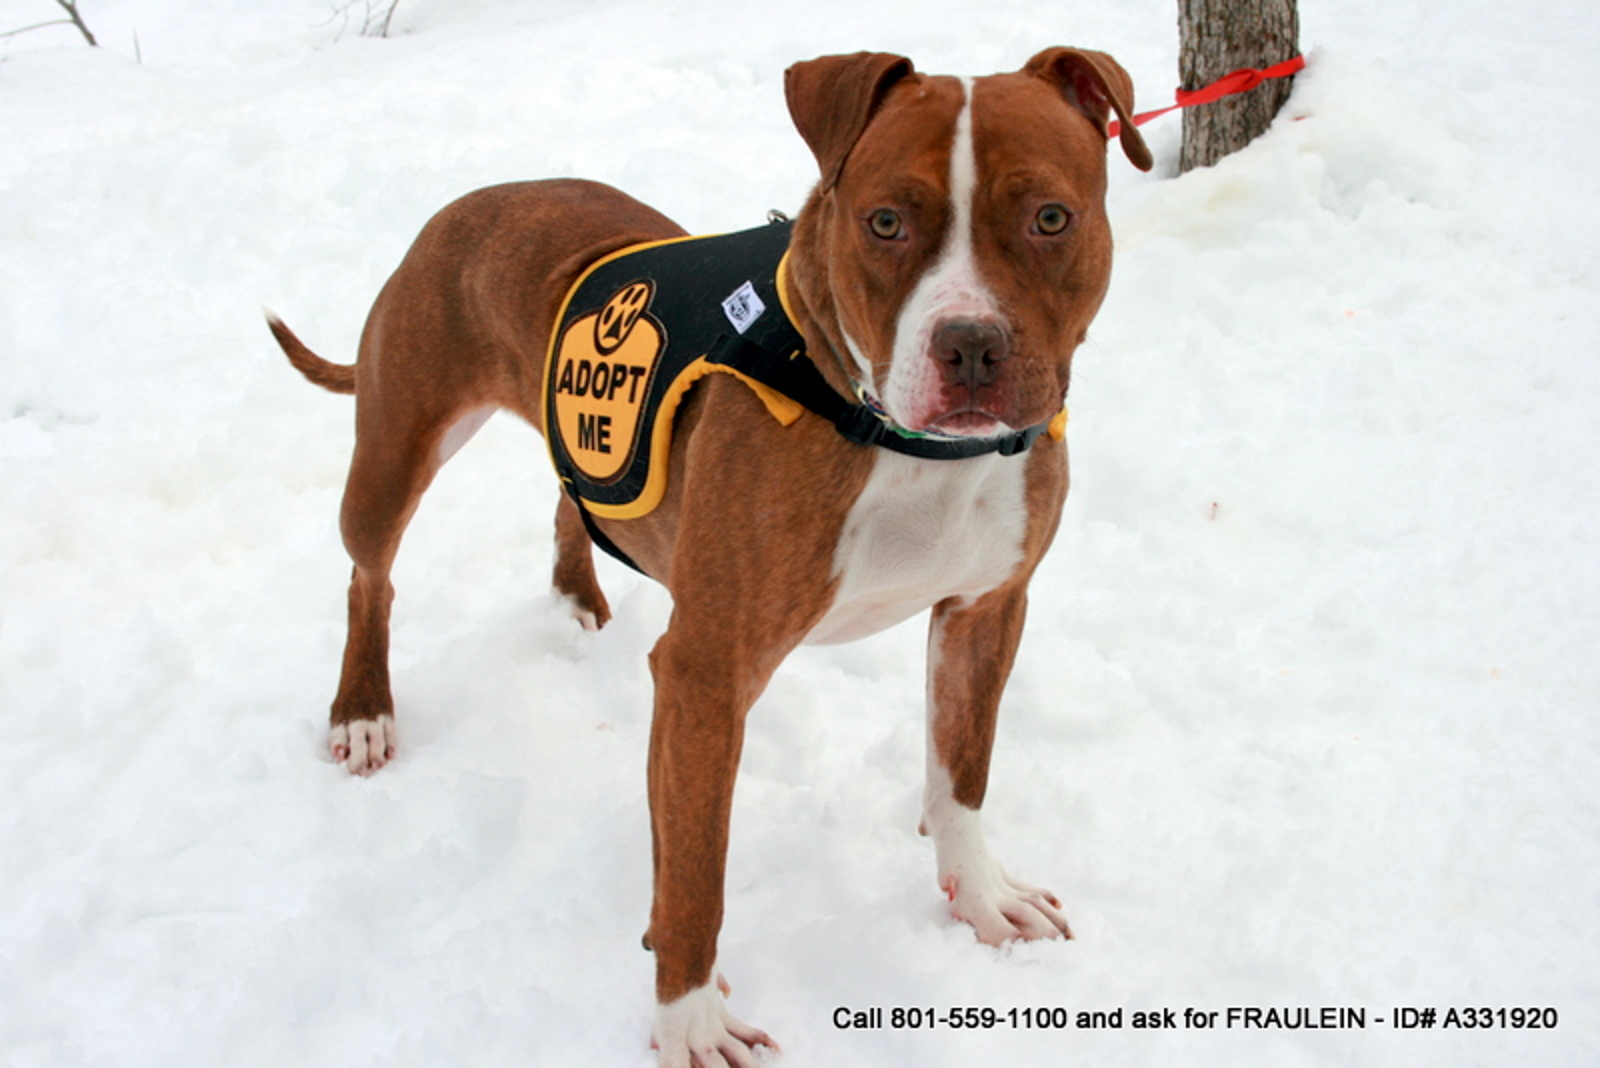 10 Facts About Breed-Specific Legislation (BSL) & How You Can Help Stop It